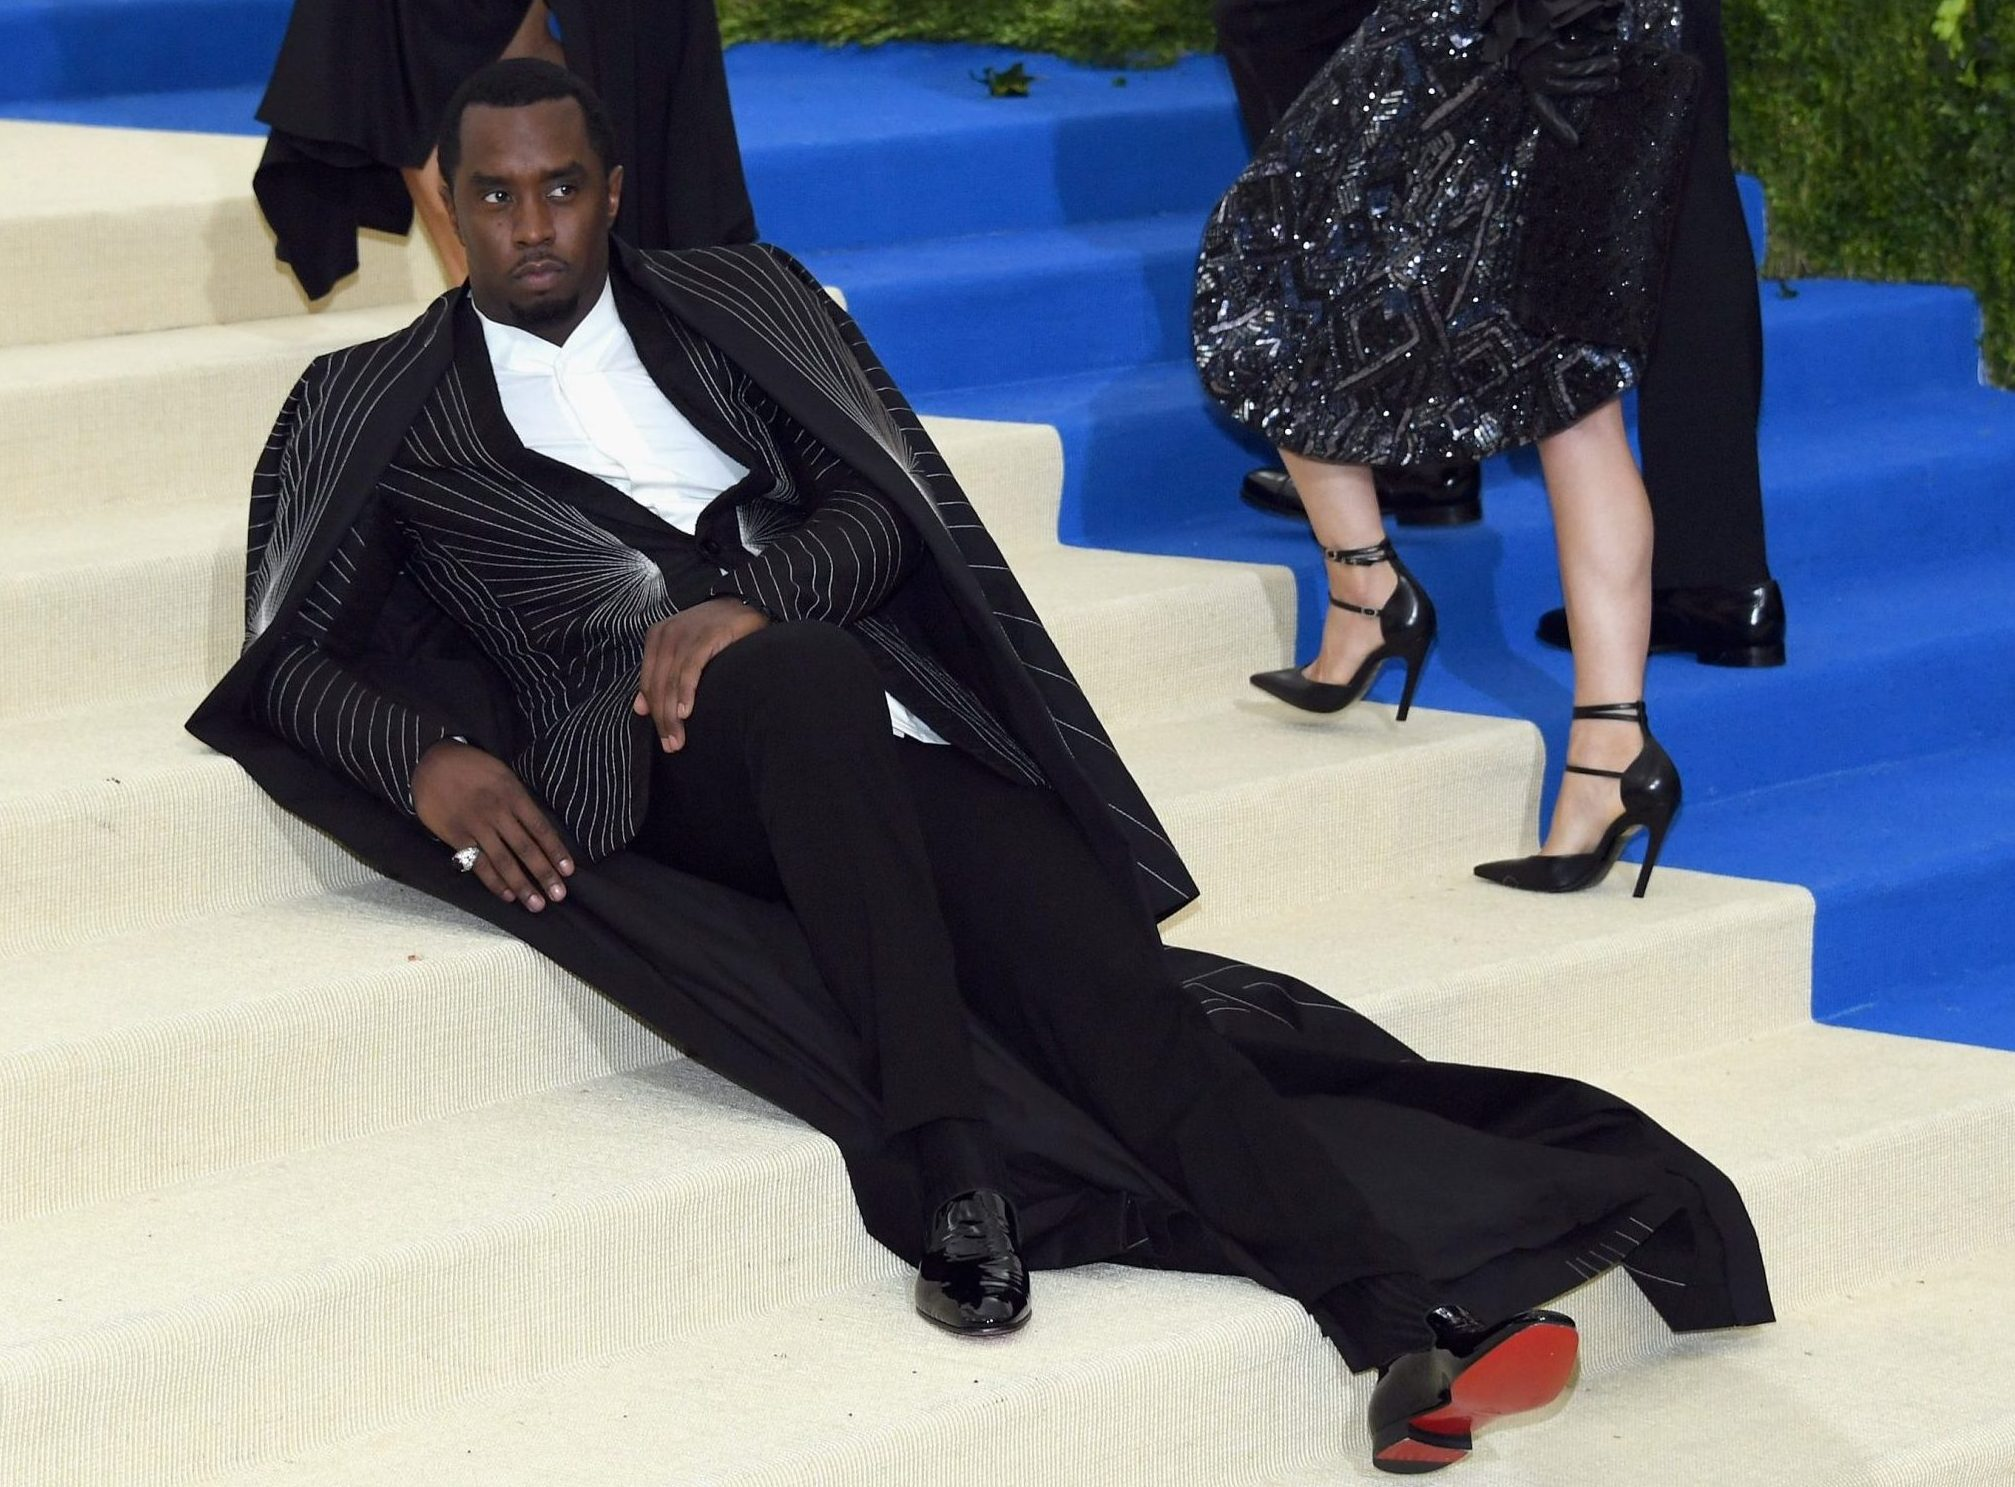 P Diddy mistook Kendall for Kylie Jenner in embarrassing Twitter post